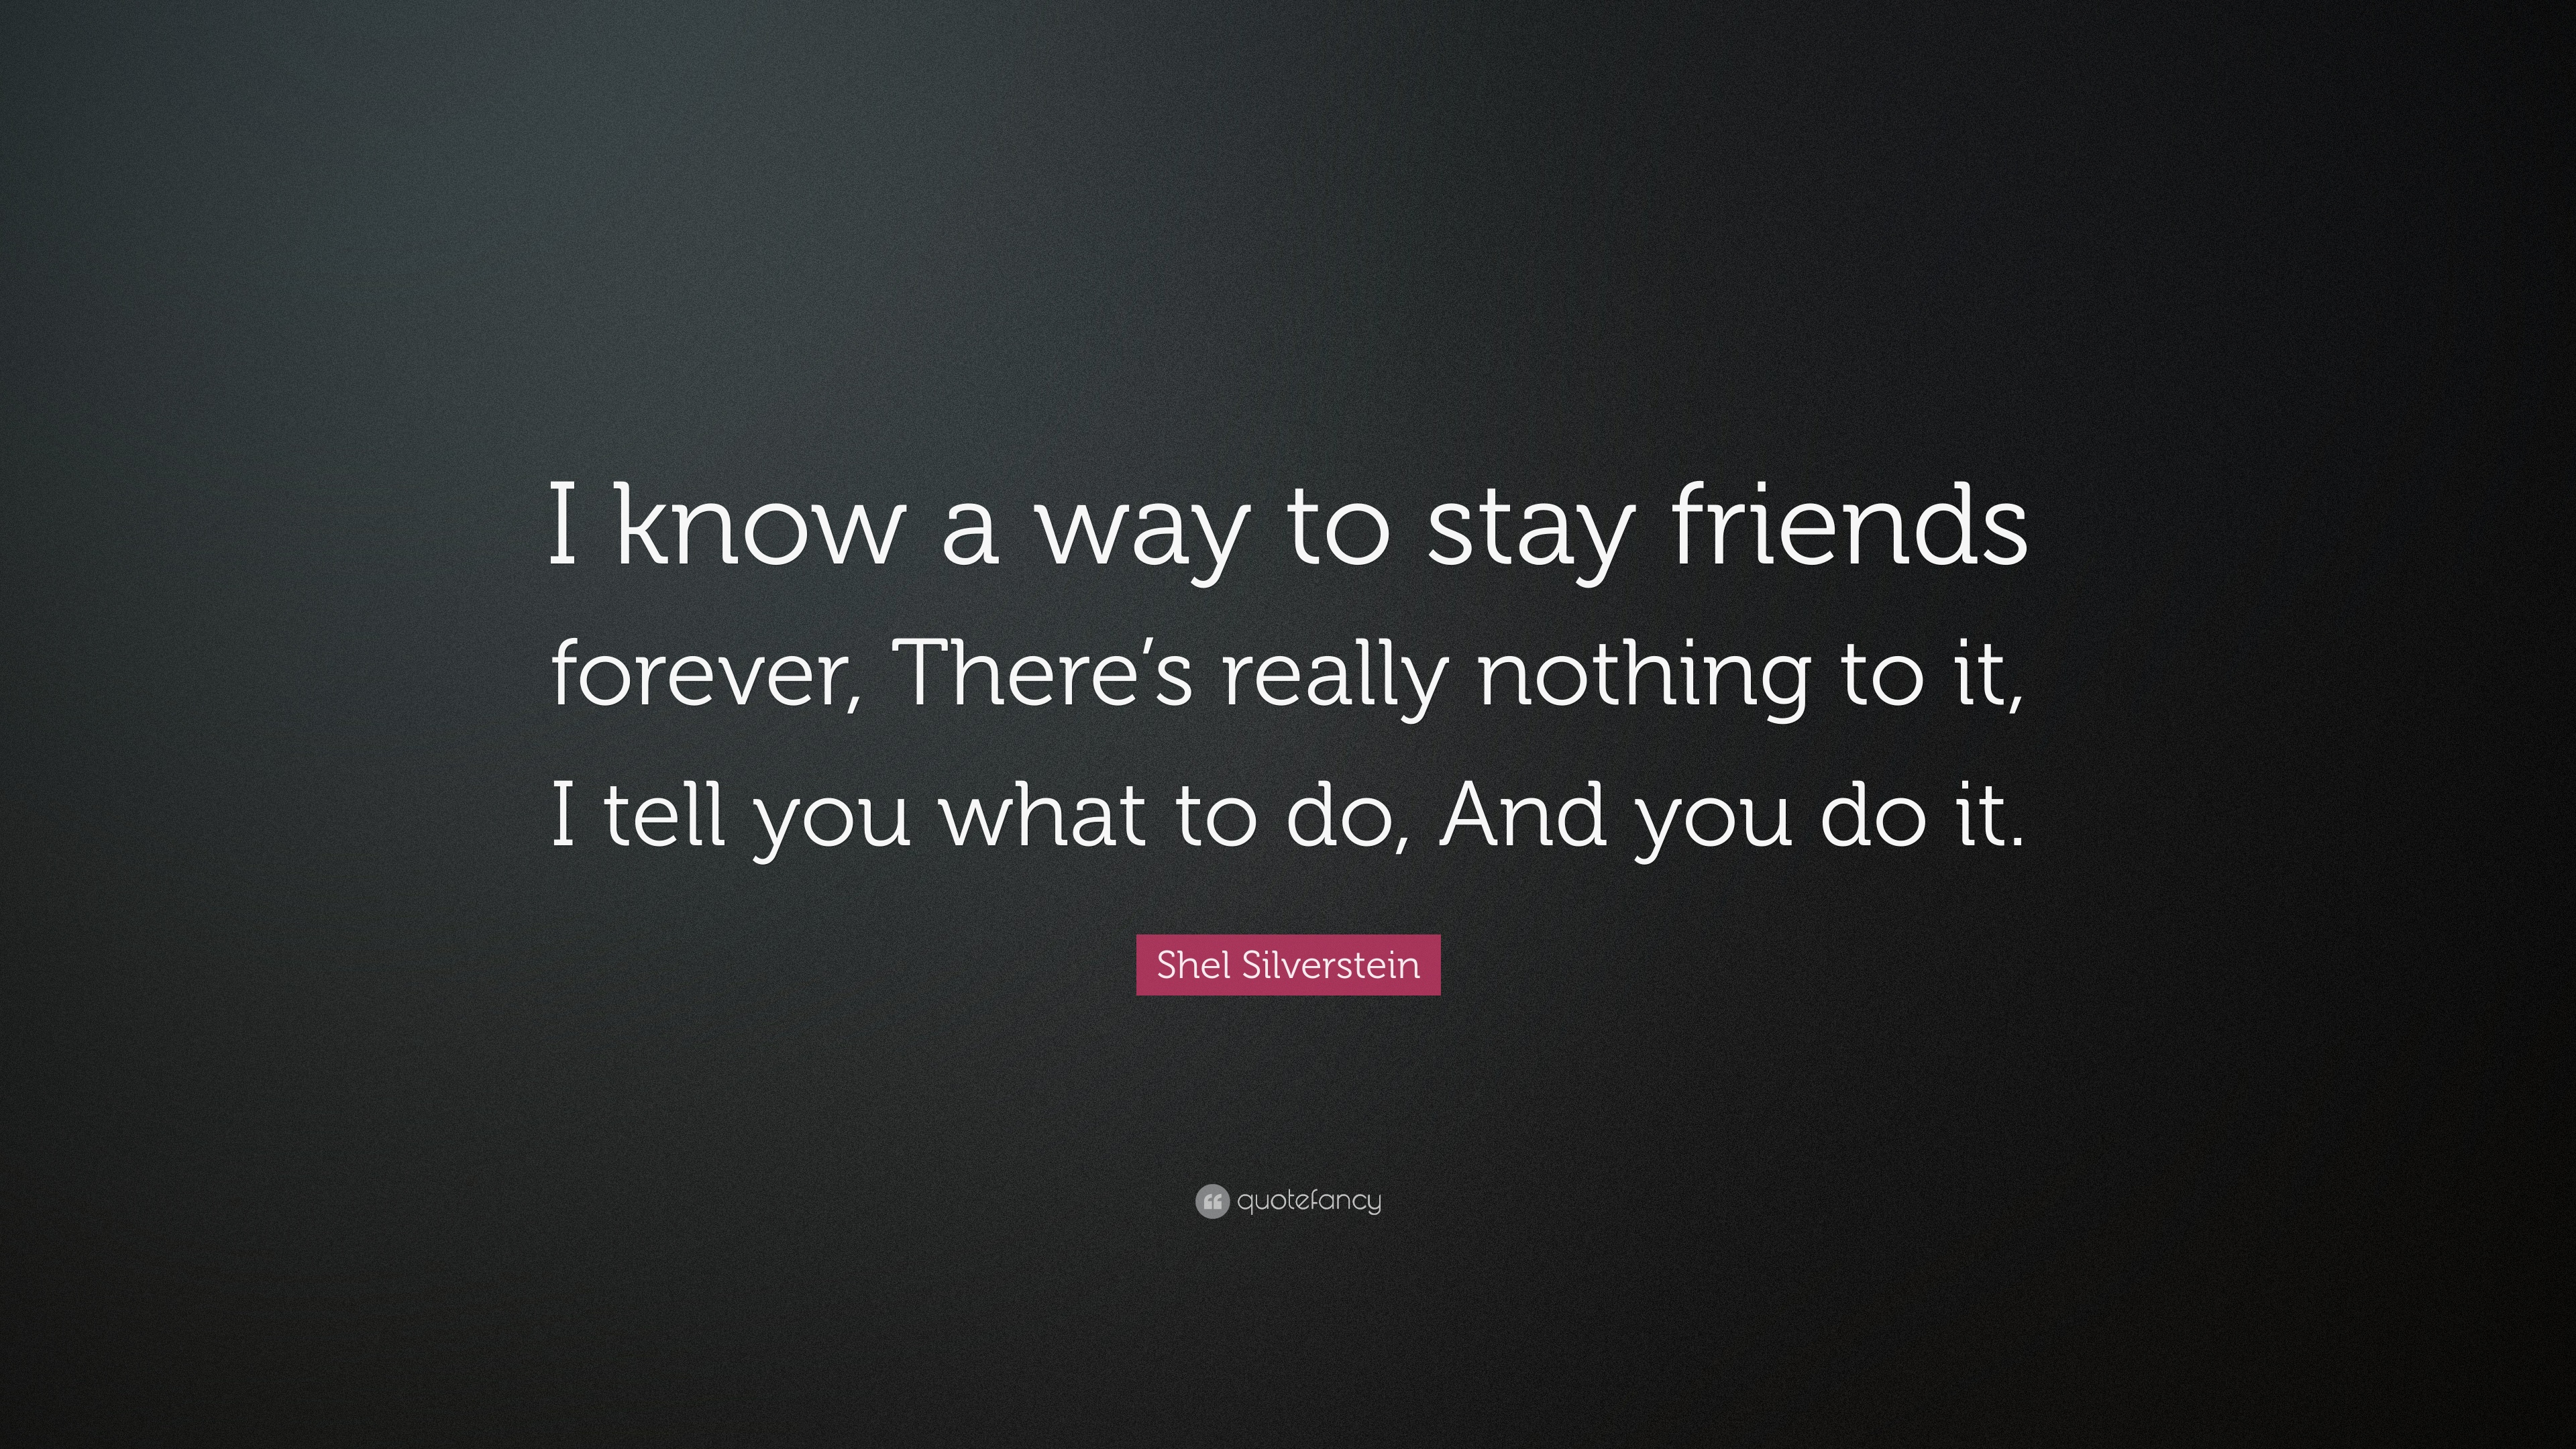 Friends Quotes From Shel Silverstein: Shel Silverstein Quotes (71 Wallpapers)